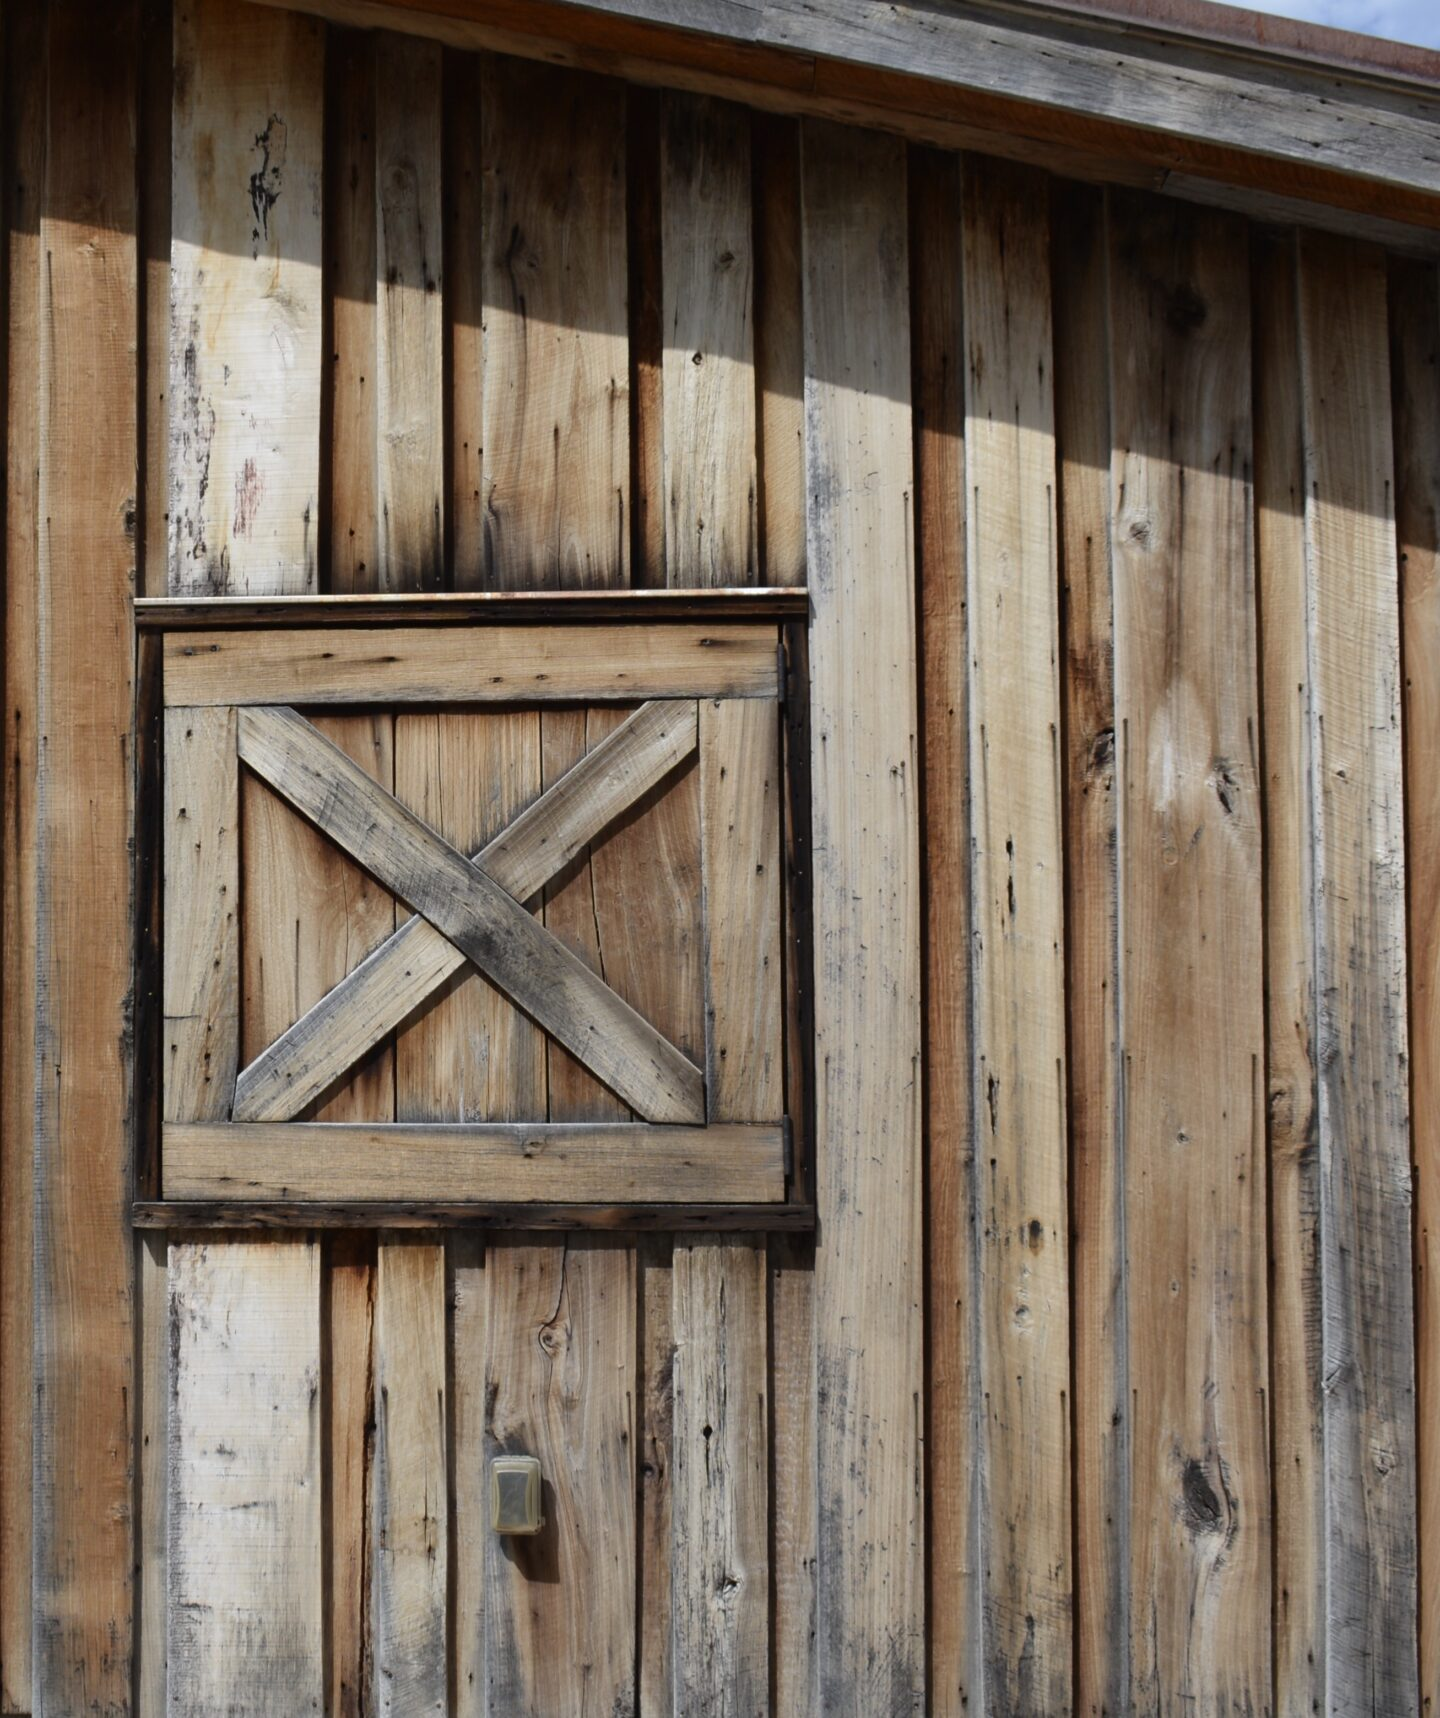 Barn wood at the ranch.